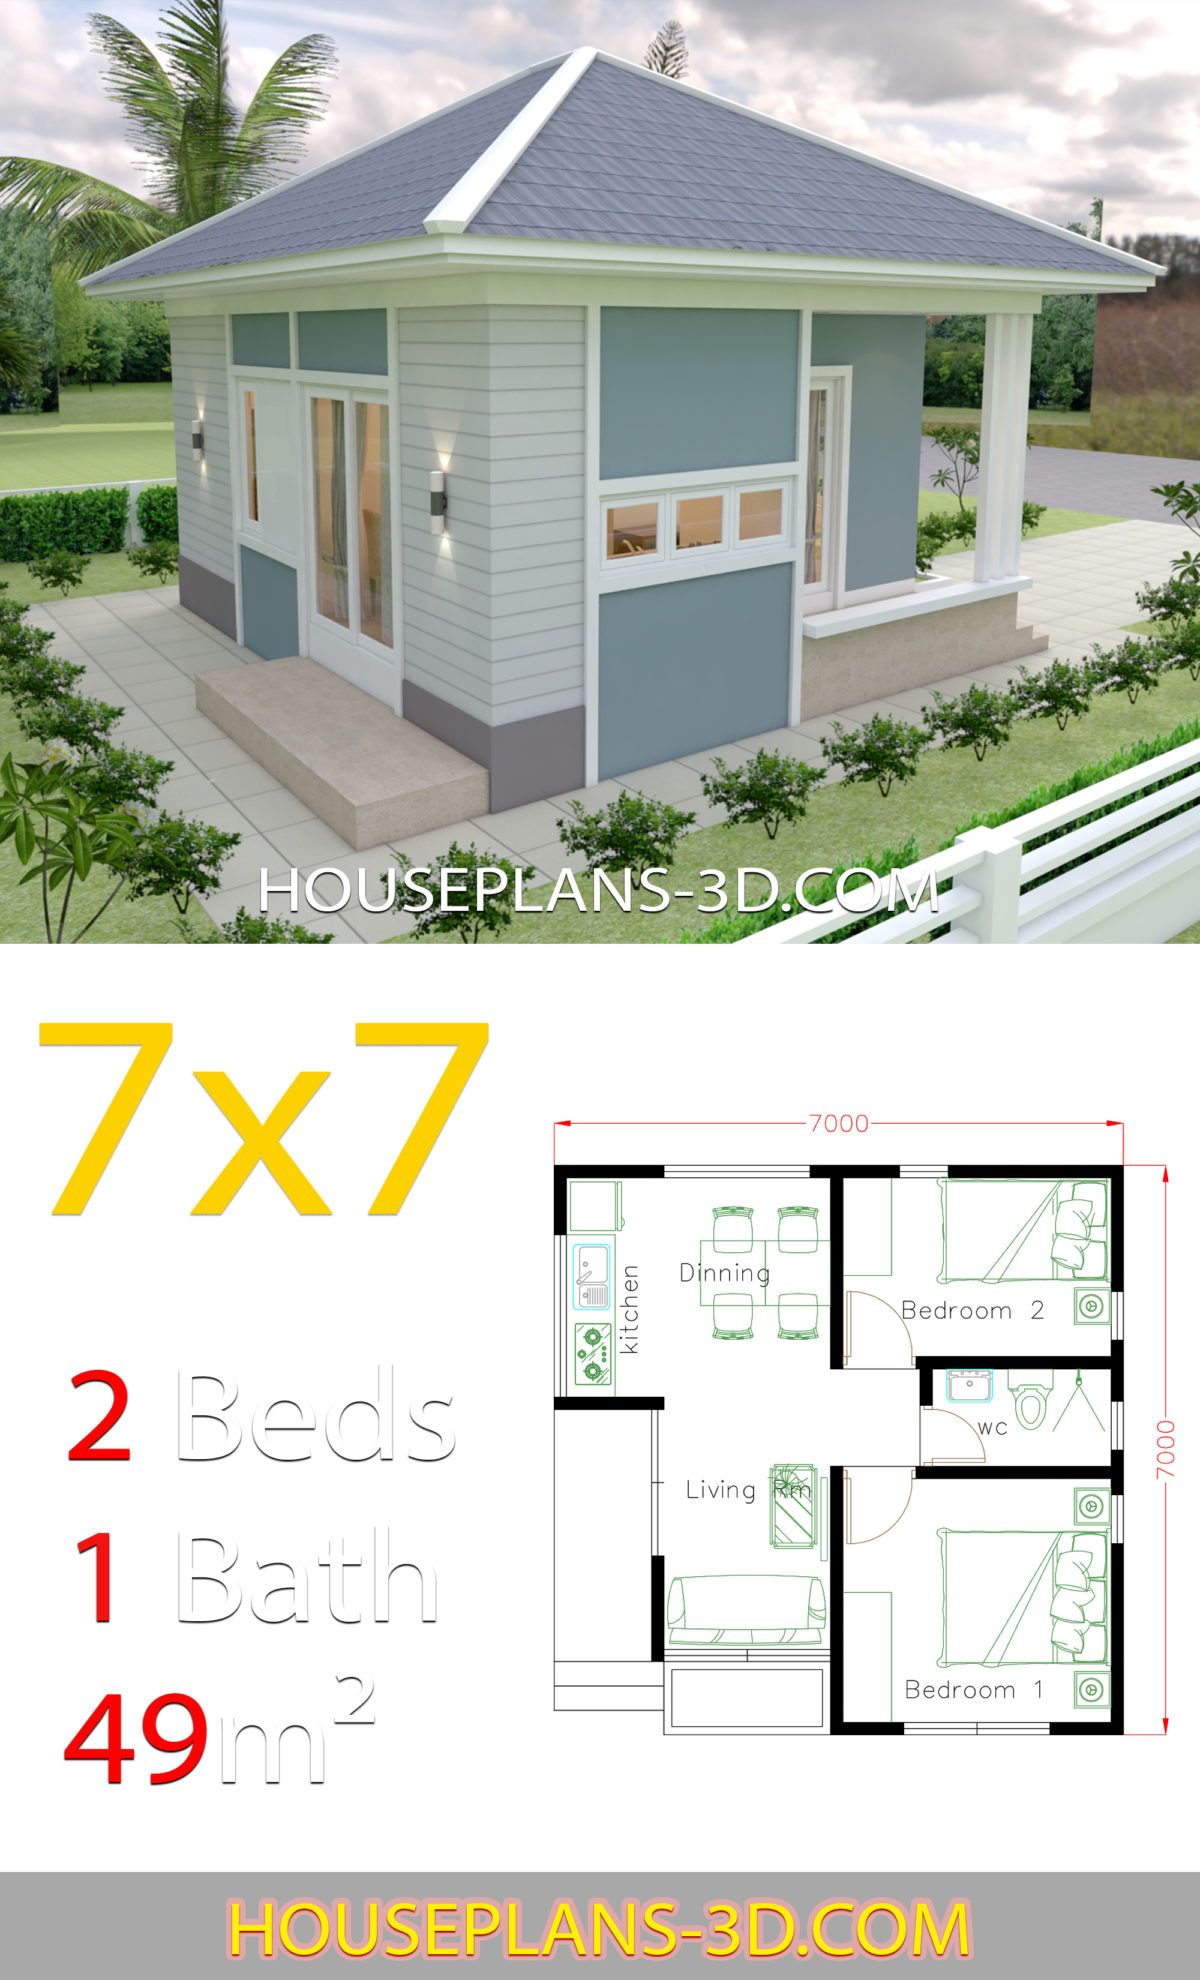 House Design Plans 7x7 With 2 Bedrooms House Plans 3d In 2020 House Plans House Design Small House Design Plans